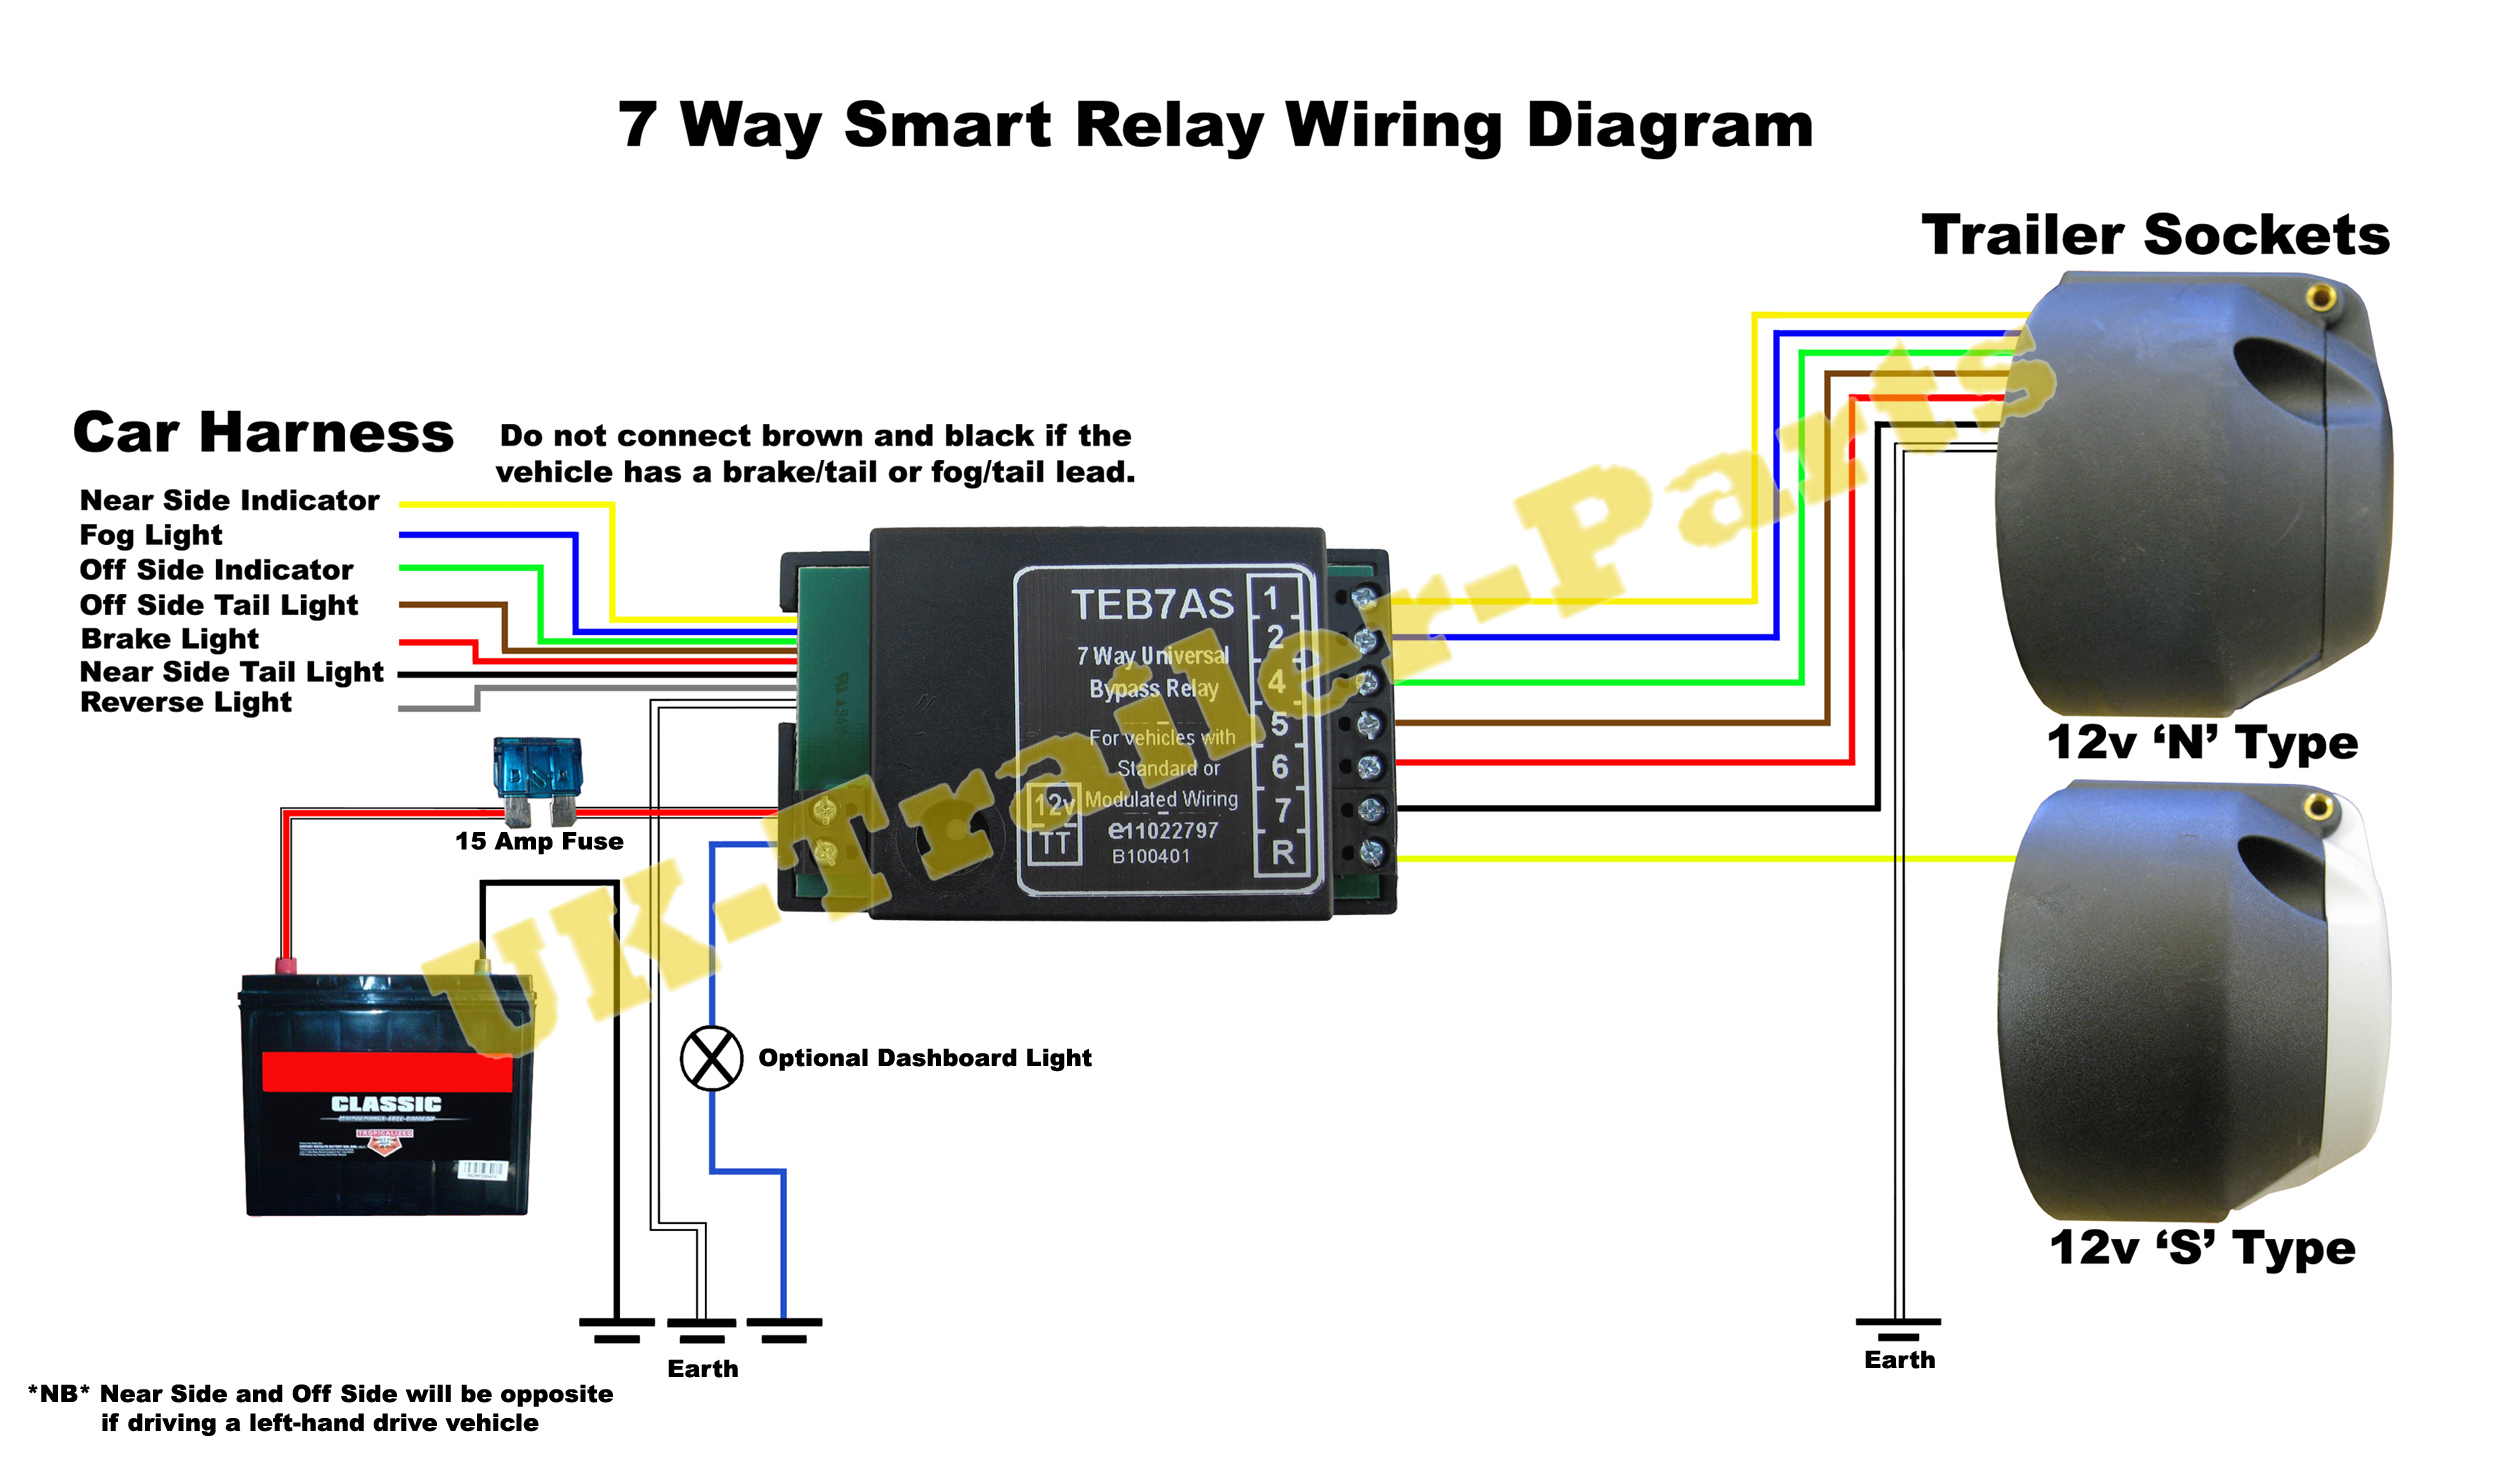 smart relay wiring diagram2 7 way universal bypass relay wiring diagram uk trailer parts volvo v70 towbar wiring diagram at virtualis.co